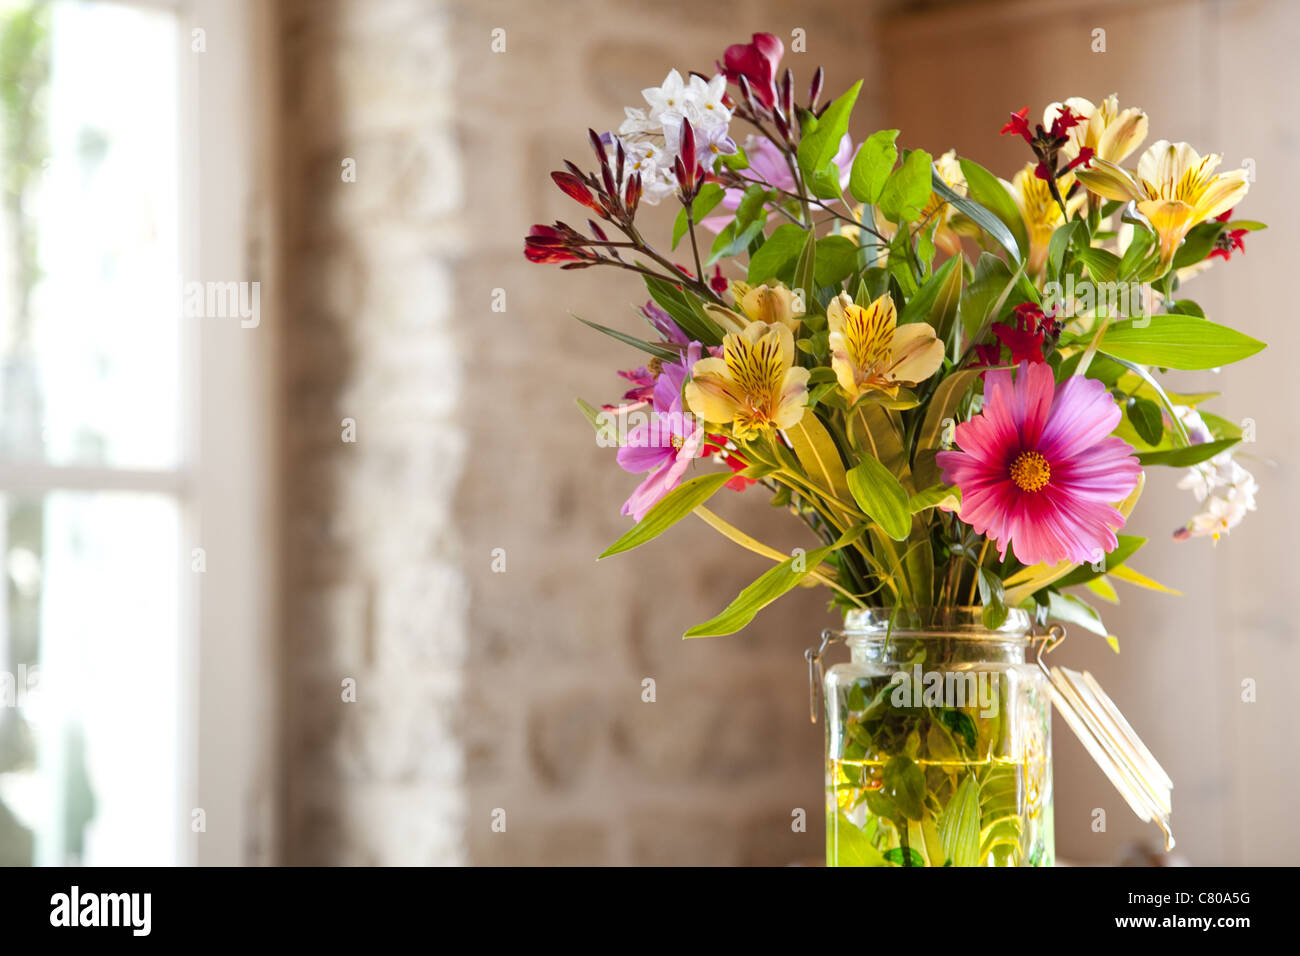 Colour photo of a fresh bouquet of flowers set inside on the kitchen table on a spring morning in France. - Stock Image